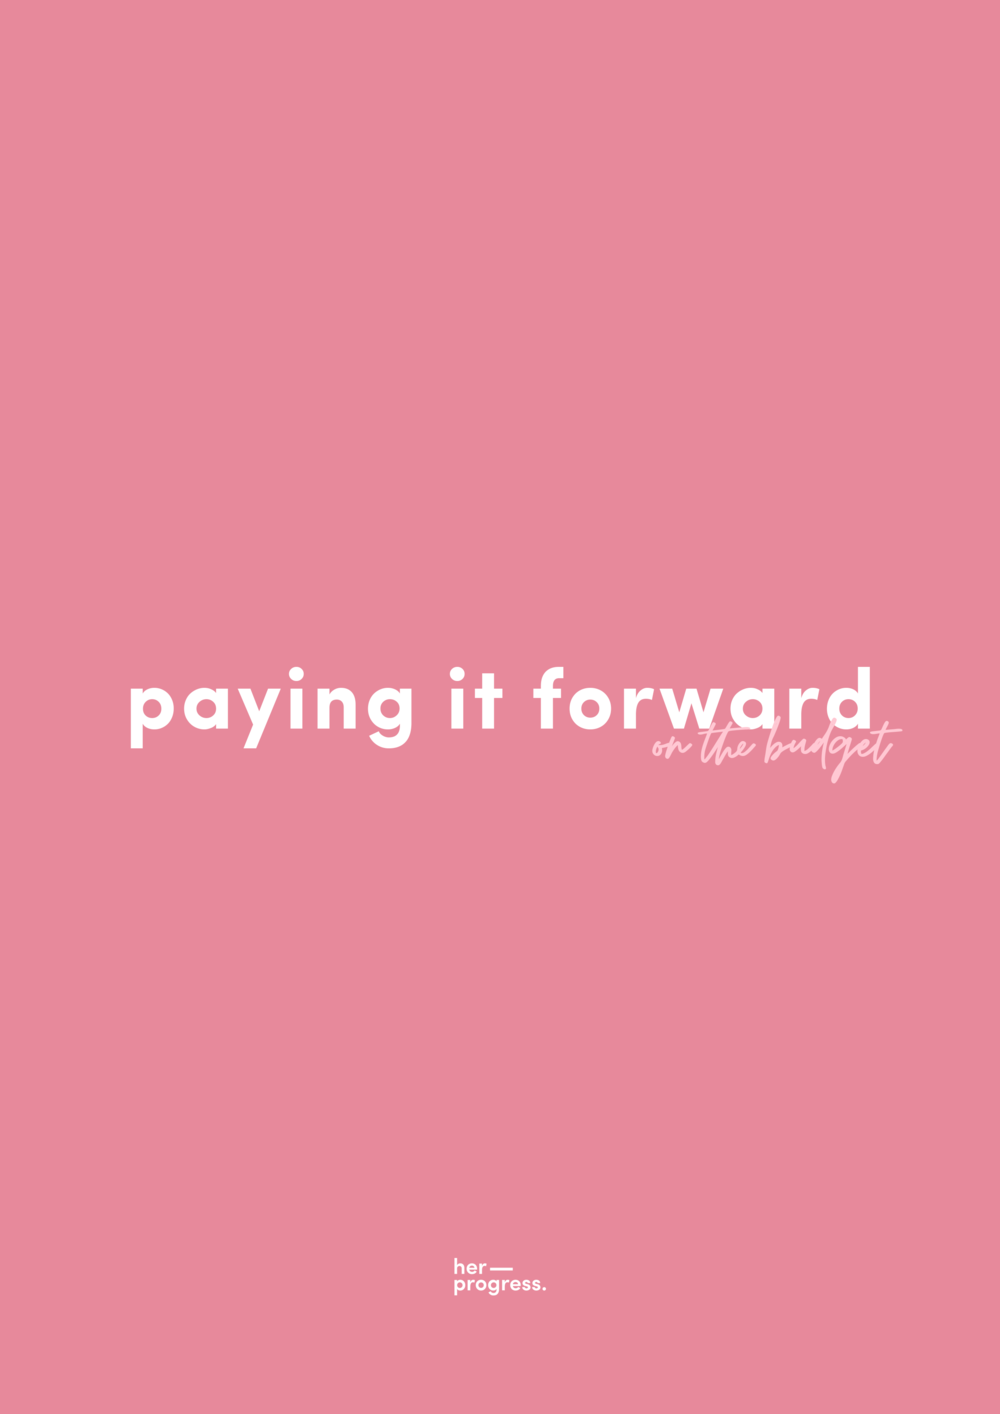 Pay it forward on a budget by Her Progress